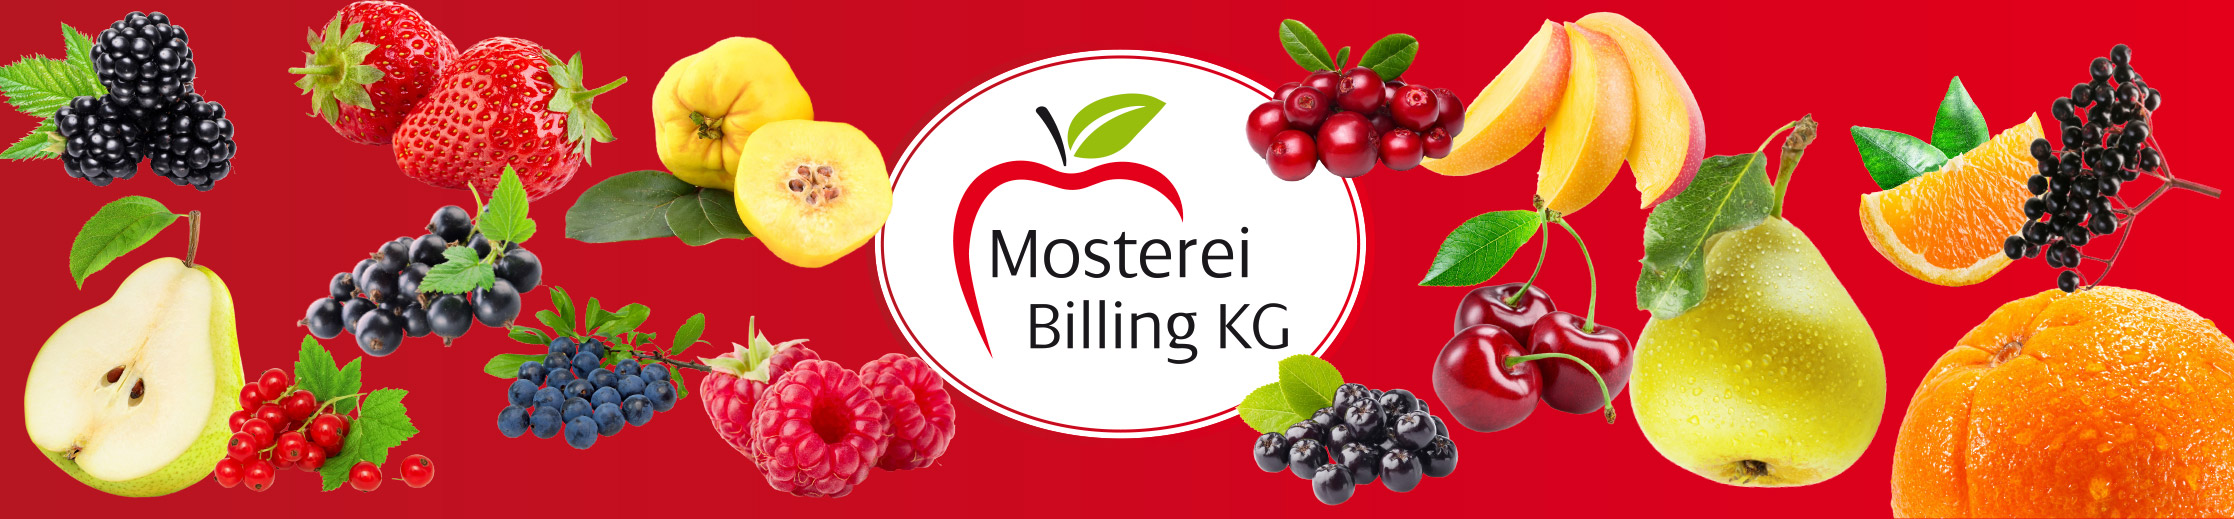 Mosterei Billing